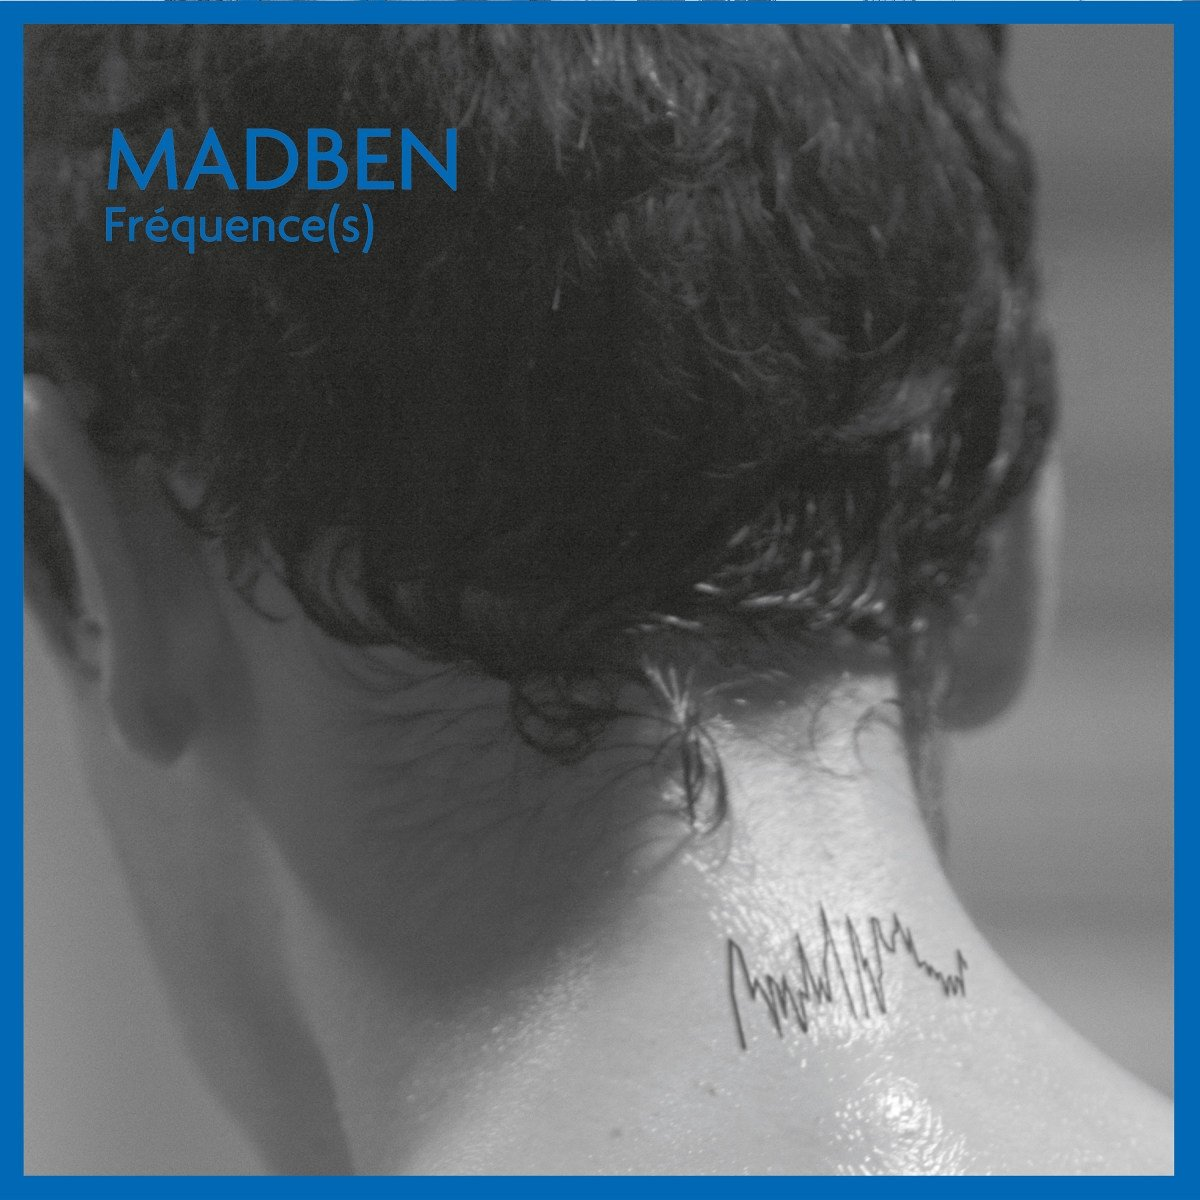 Vinilo : MADBEN - Frequence(s) (3 Pack, 3PC)